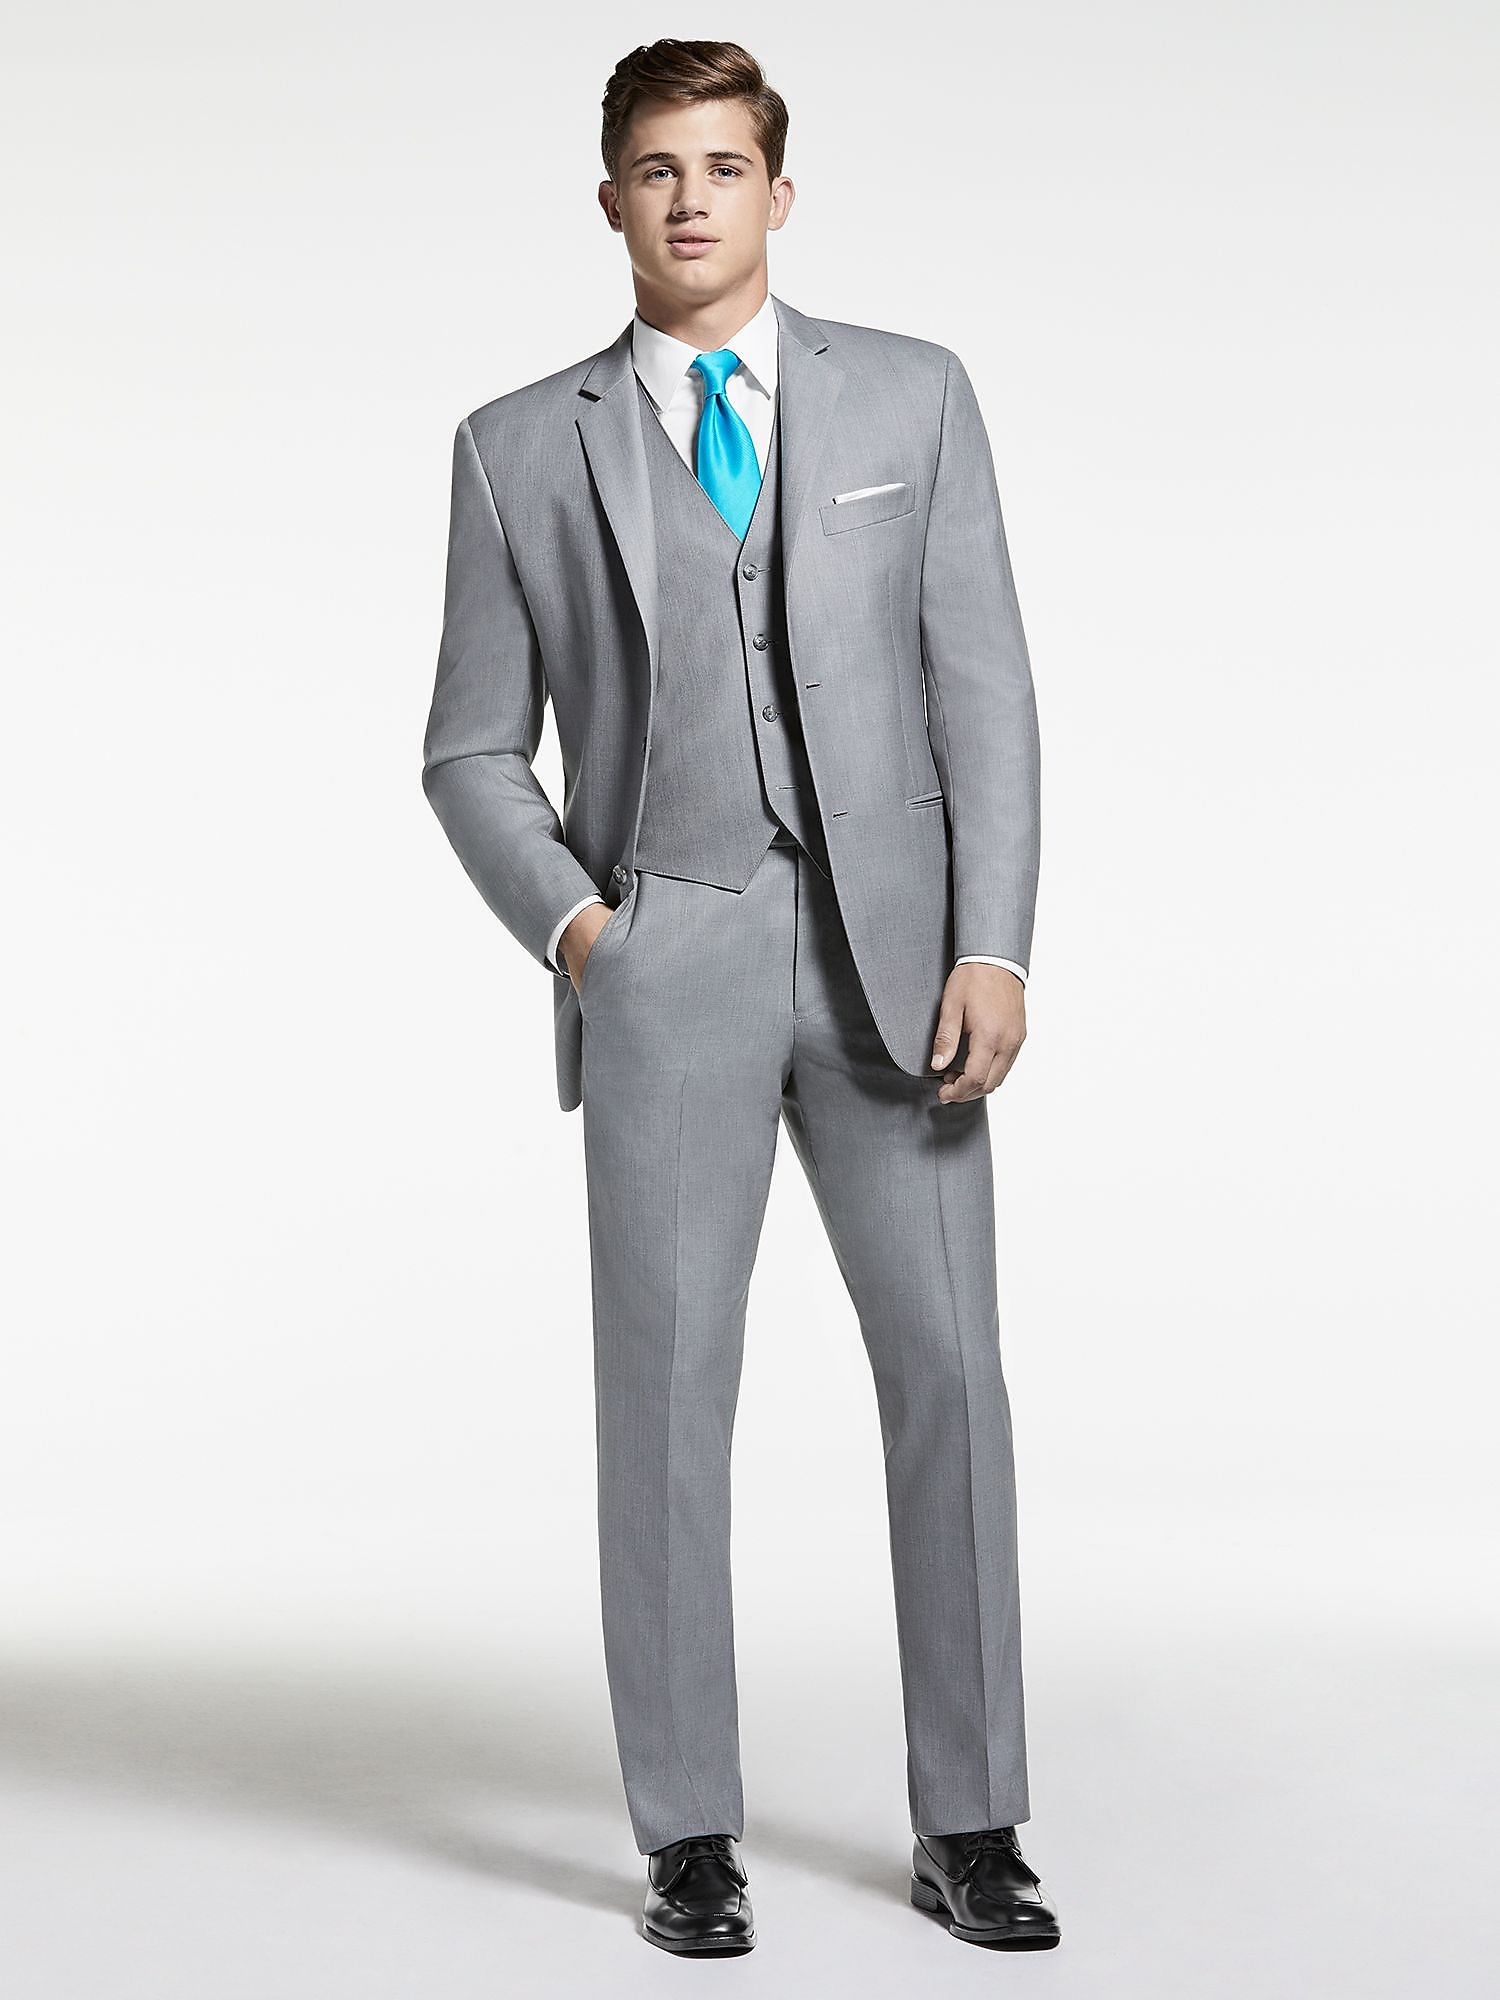 Mens Gray Suit lMtd